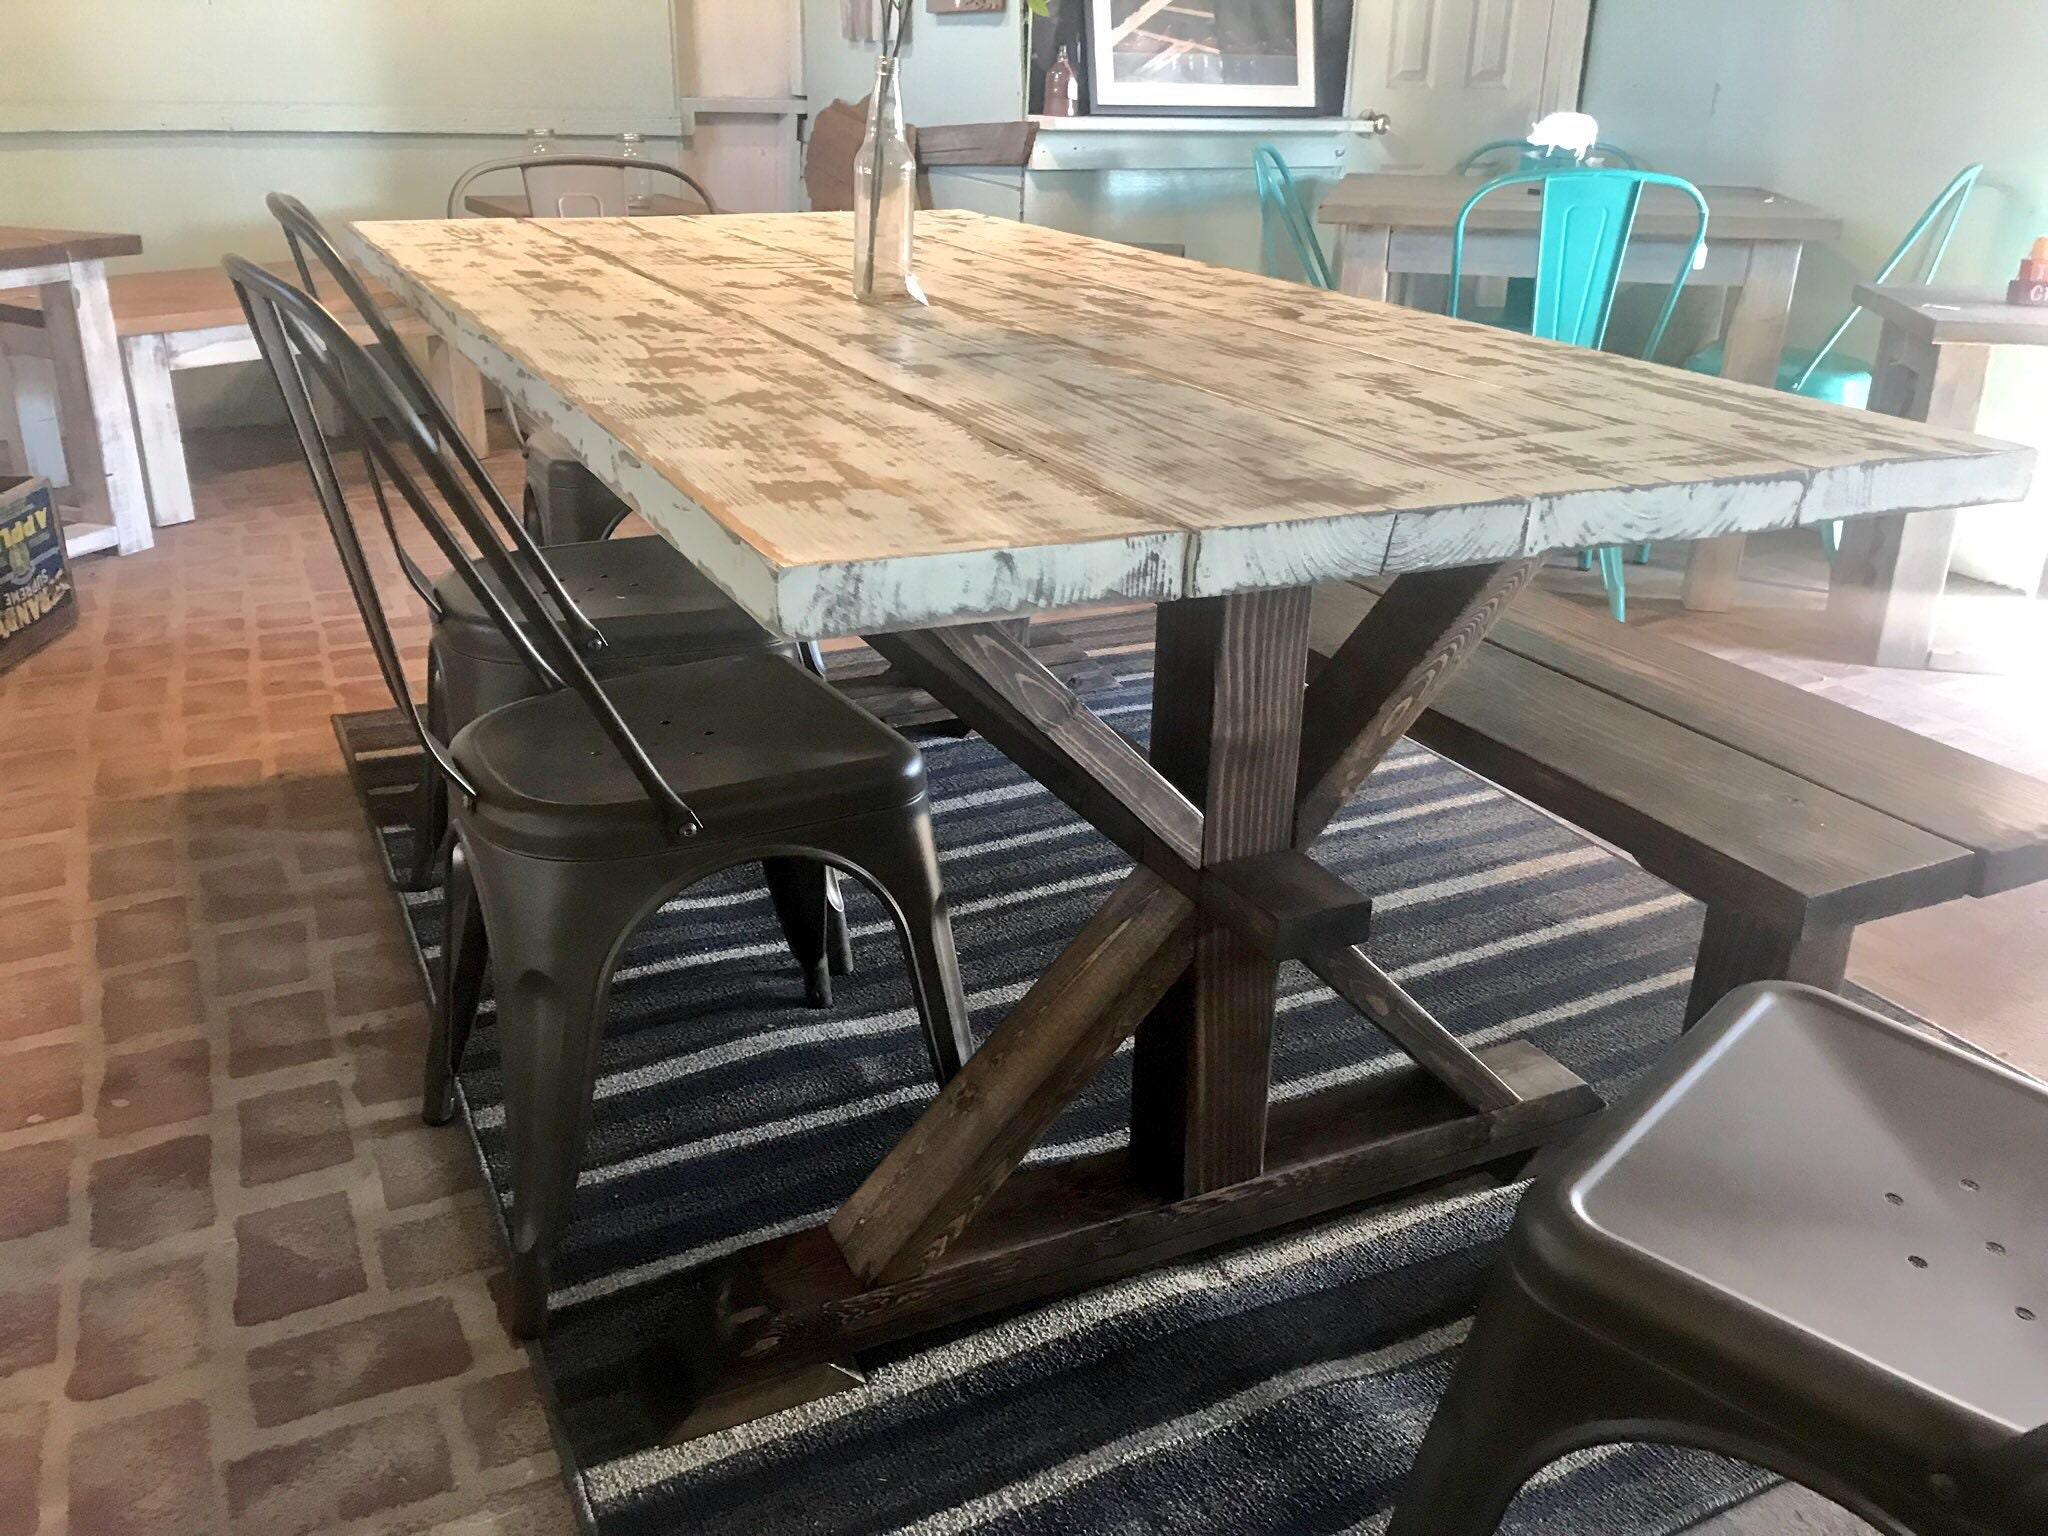 Fabulous Rustic Pedestal Farmhouse Wood Table Set With Long Bench And Gmtry Best Dining Table And Chair Ideas Images Gmtryco